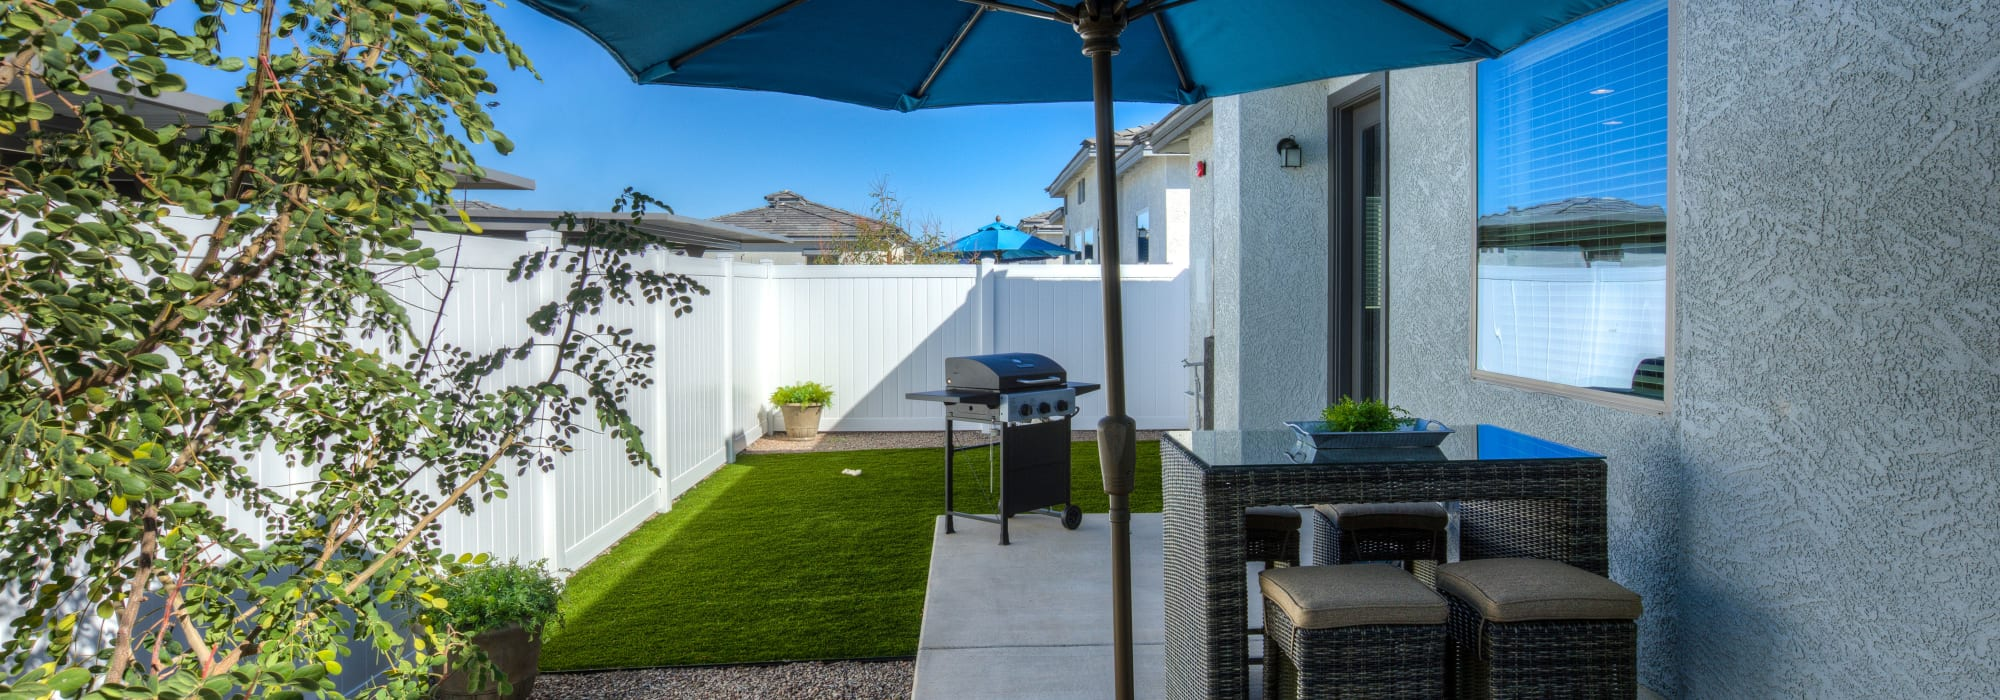 Spacious patio to entertain friends and family at Christopher Todd Communities on Greenway in Surprise, Arizona